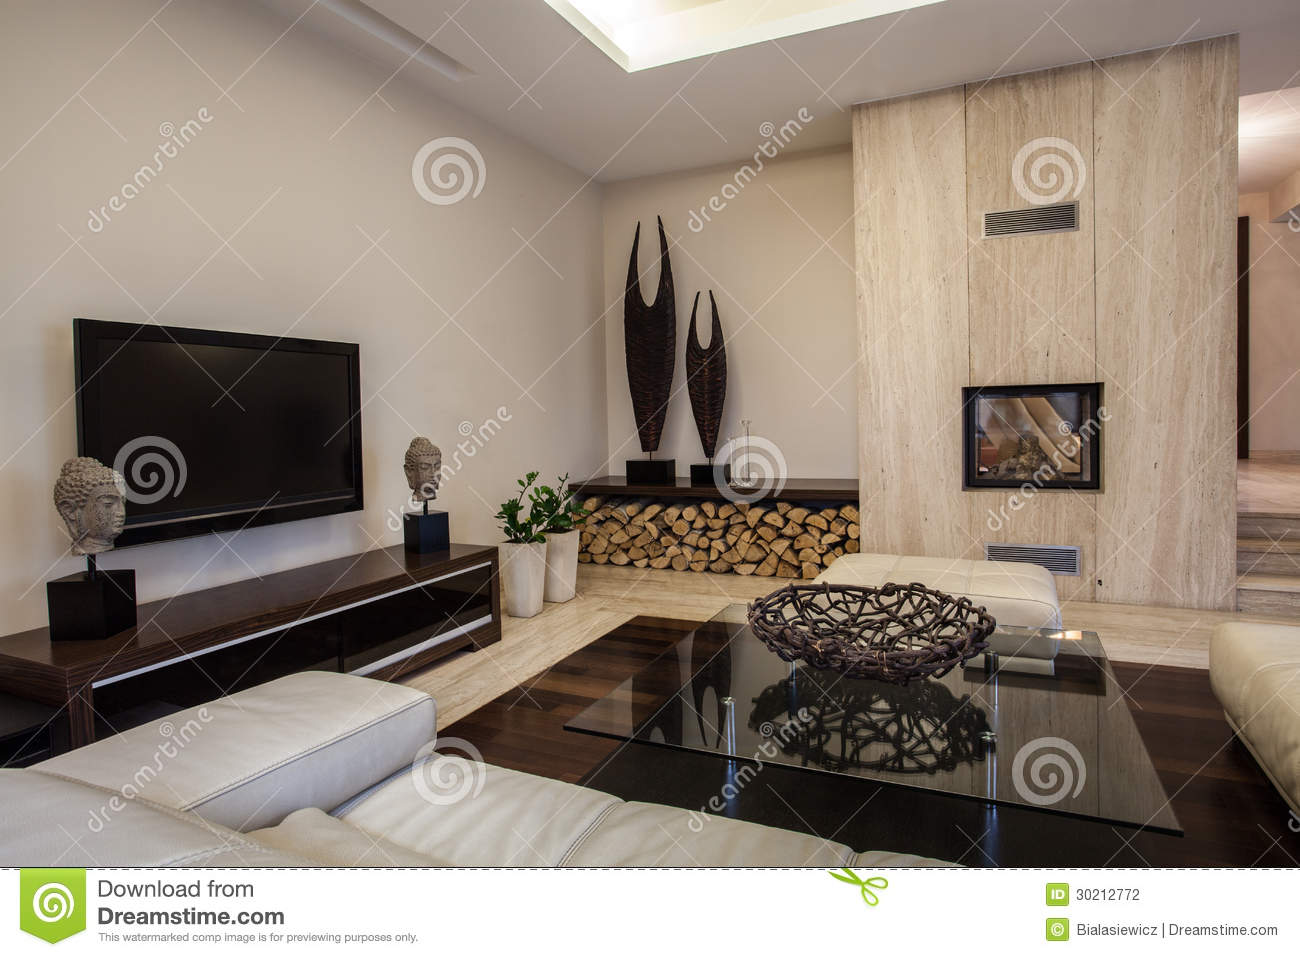 Travertine House: Braided Decoration Interior Stock Photography ...